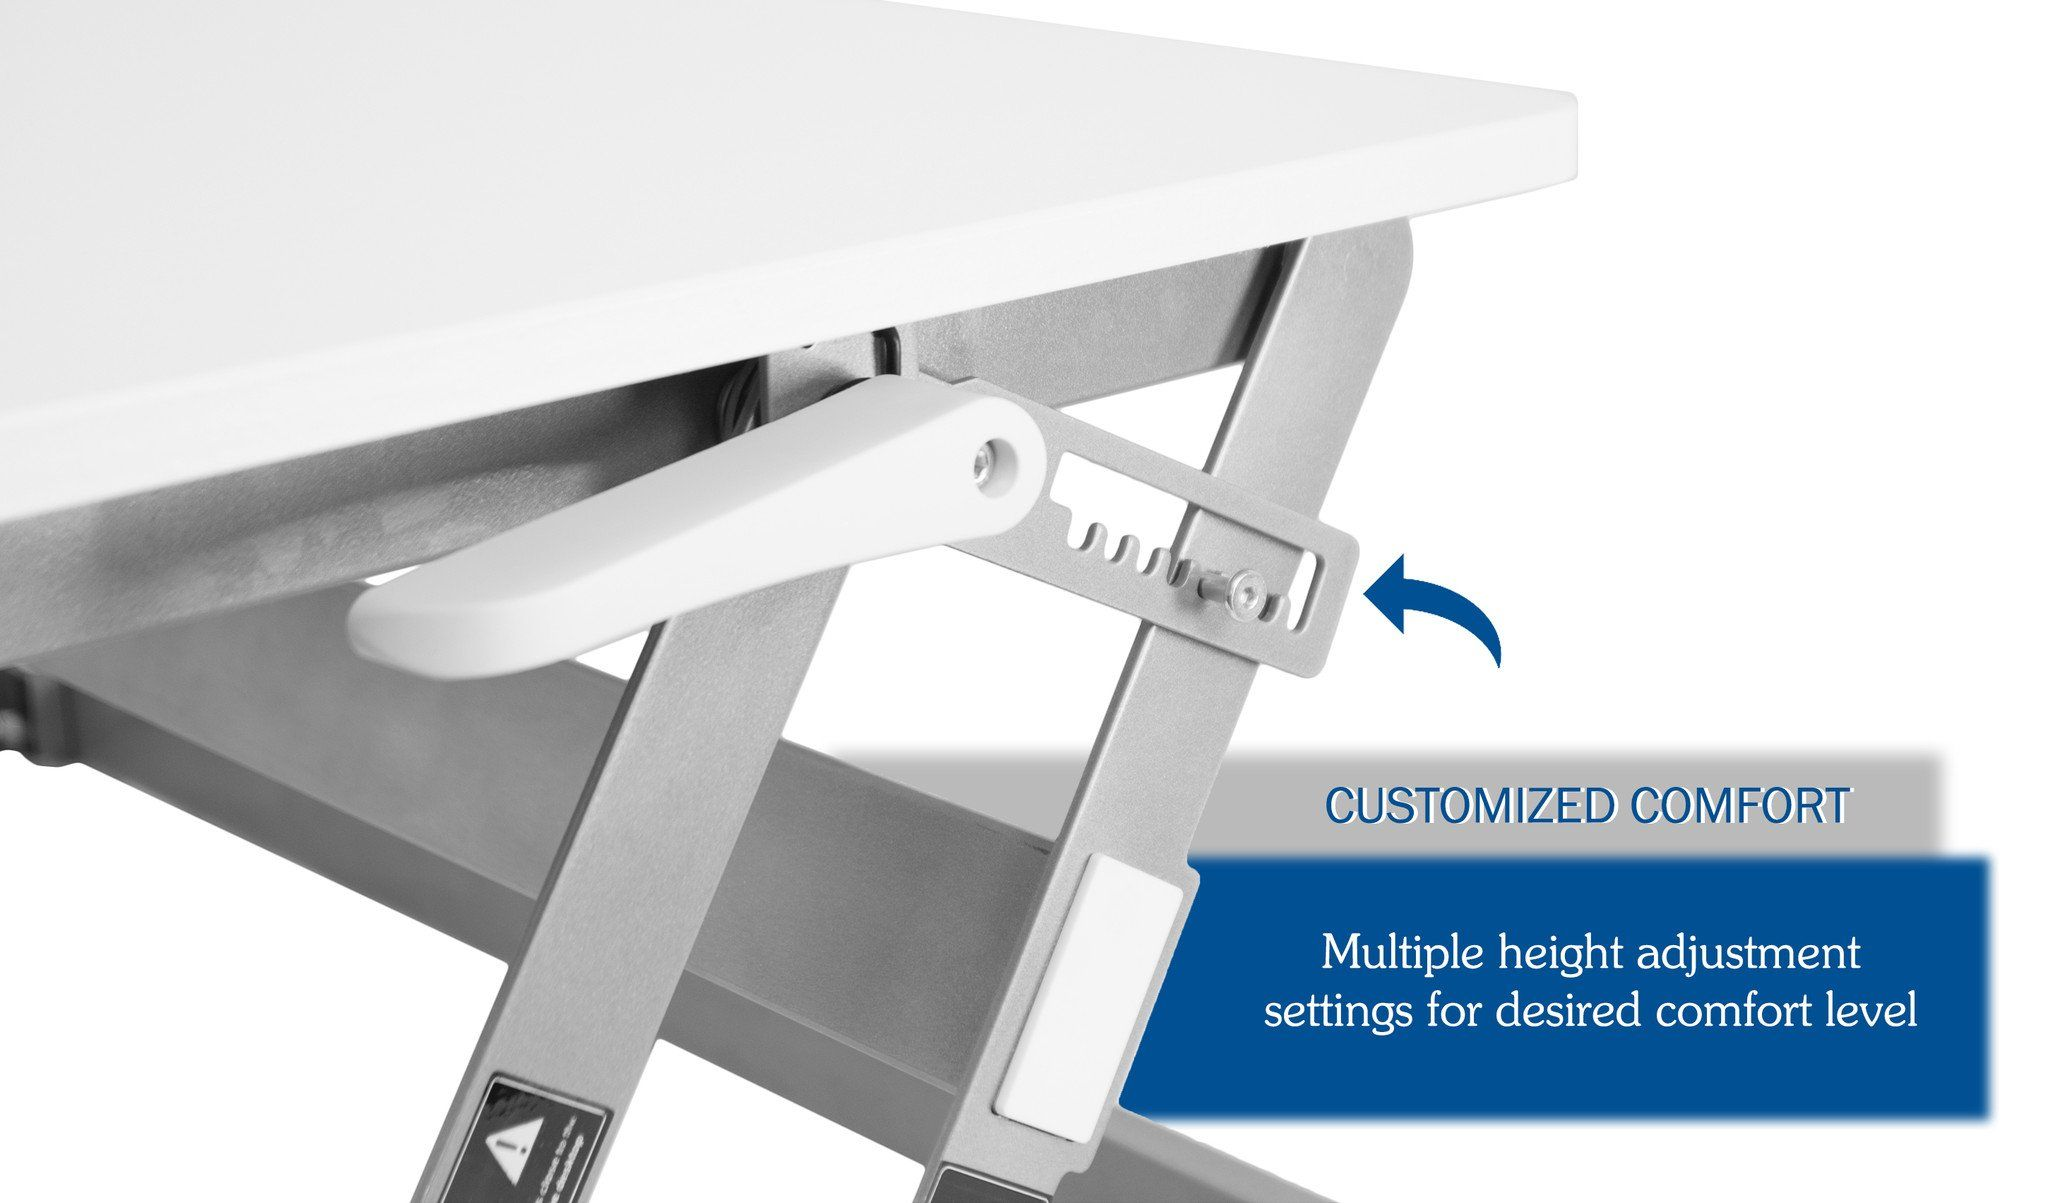 height view stand adjustable nestc quick sud down flip desks up desk store table top standing tabletop